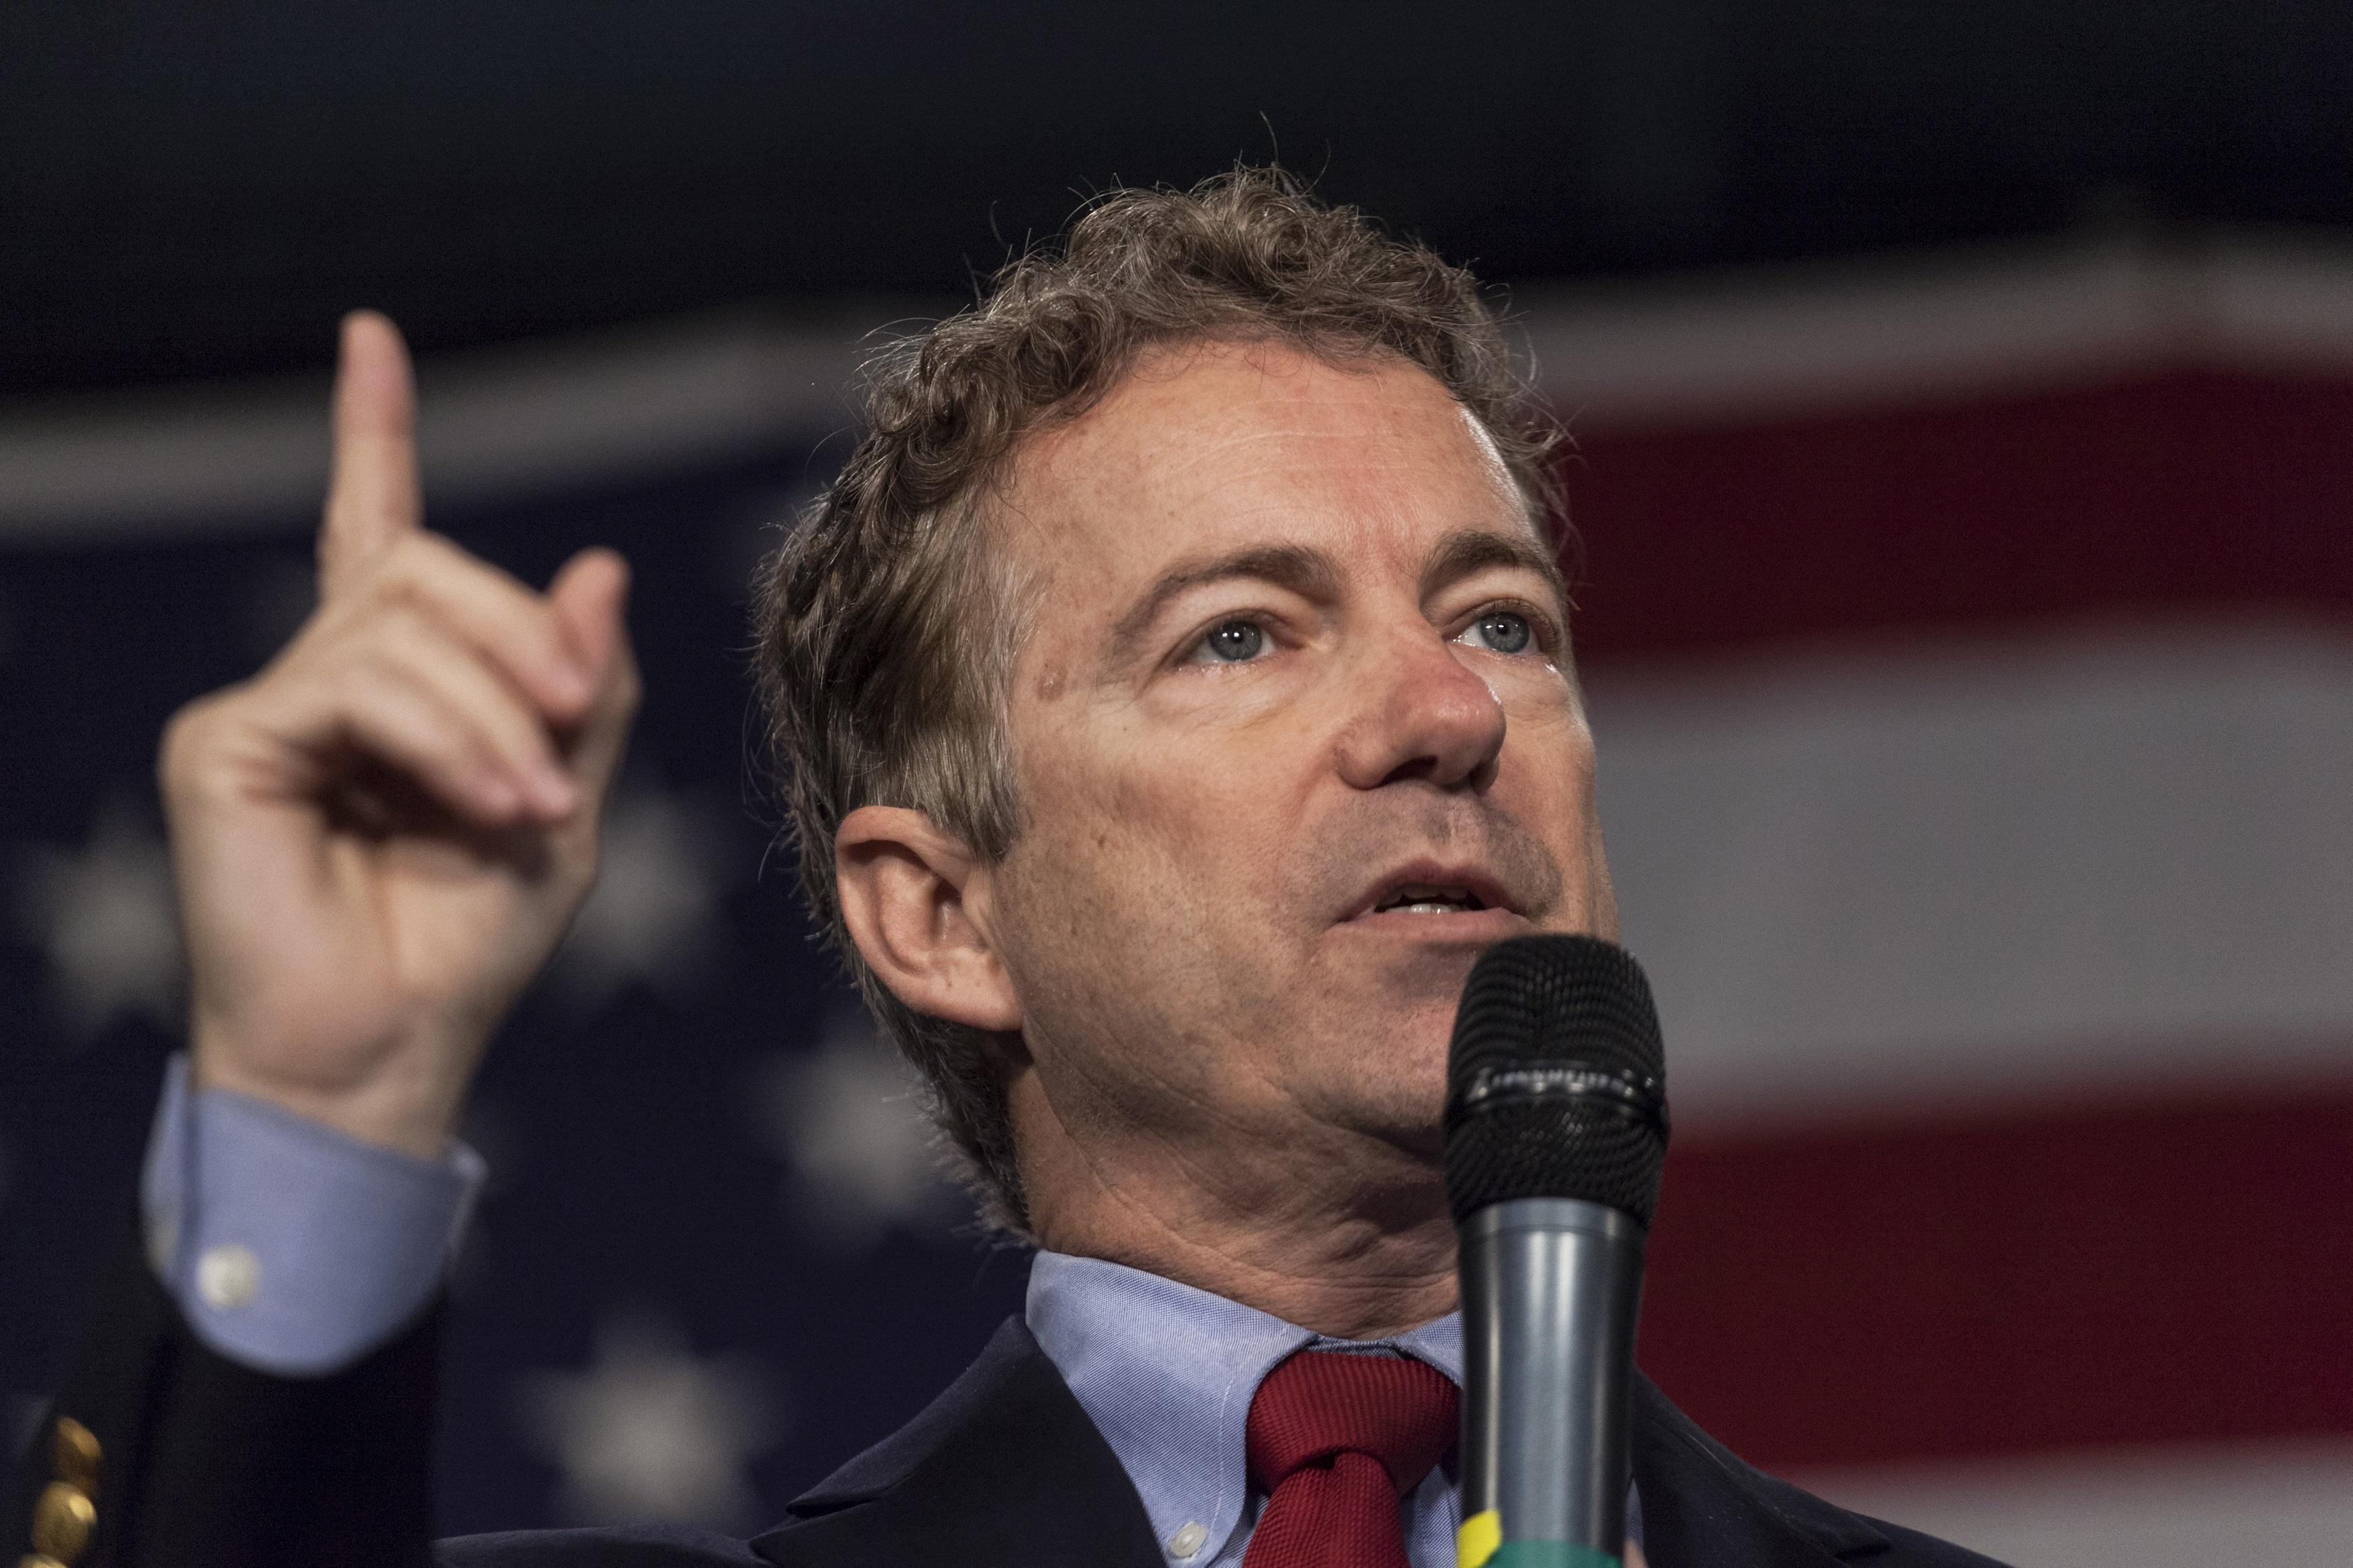 John Roberts Blocks Rand Paul's Question About Alleged Whistleblower